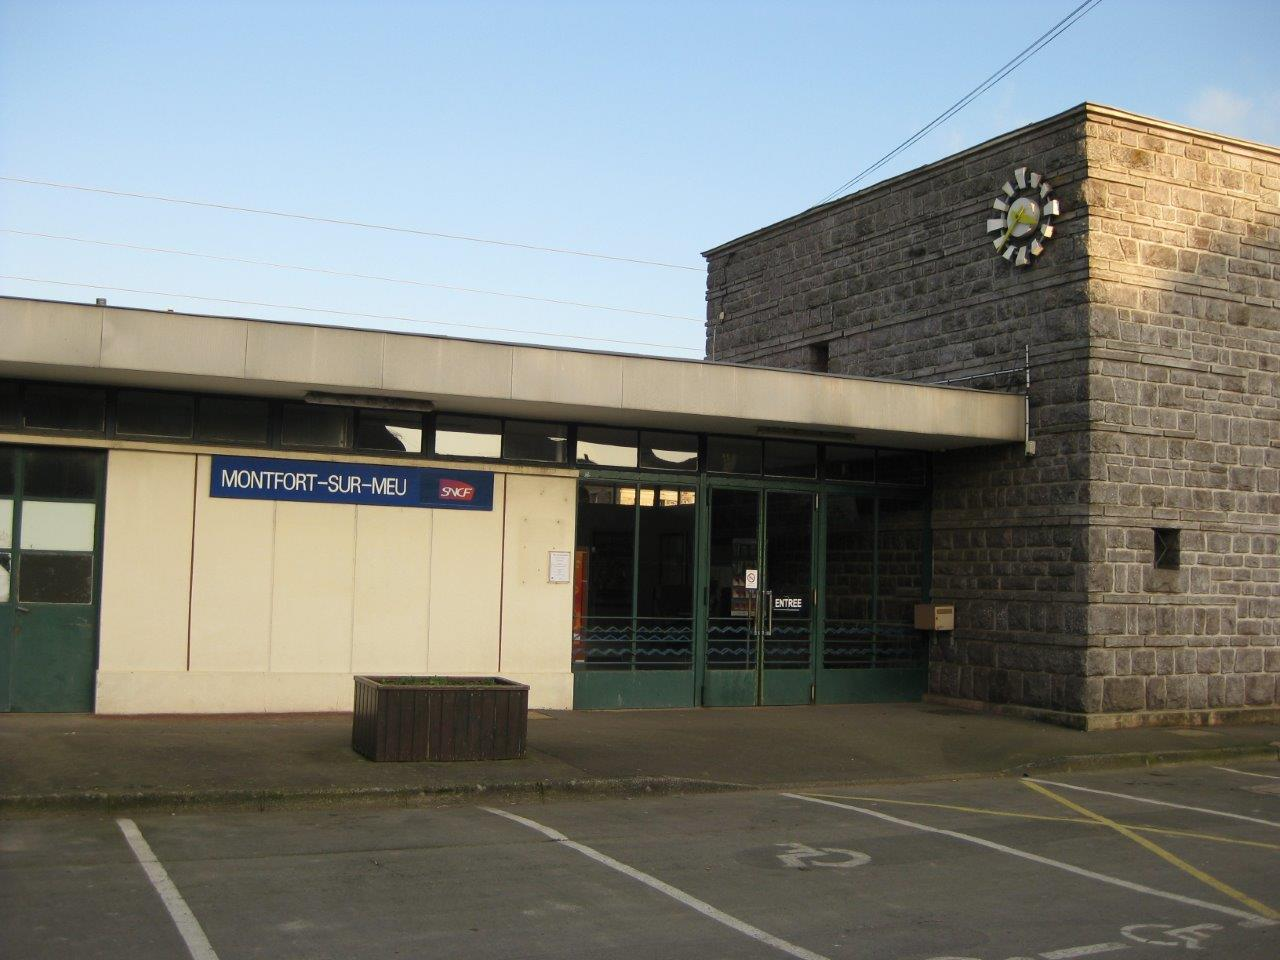 gare-de-montfort-sur-meu-train-station